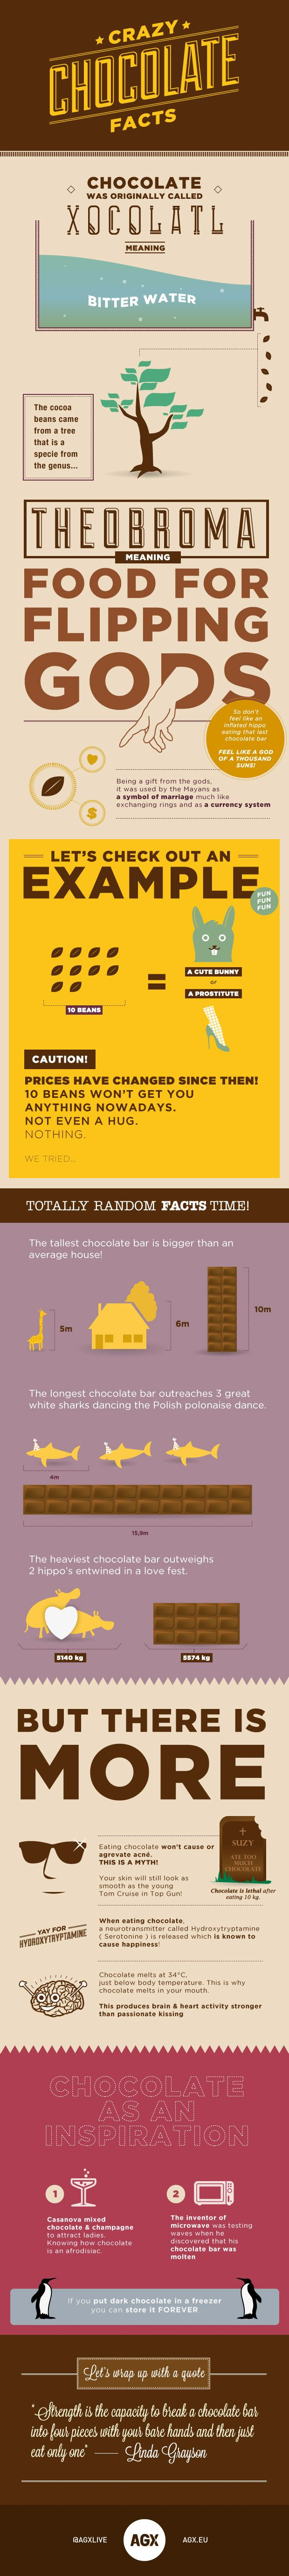 87 best Chocolate Facts images on Pinterest | Chocolate lovers ...